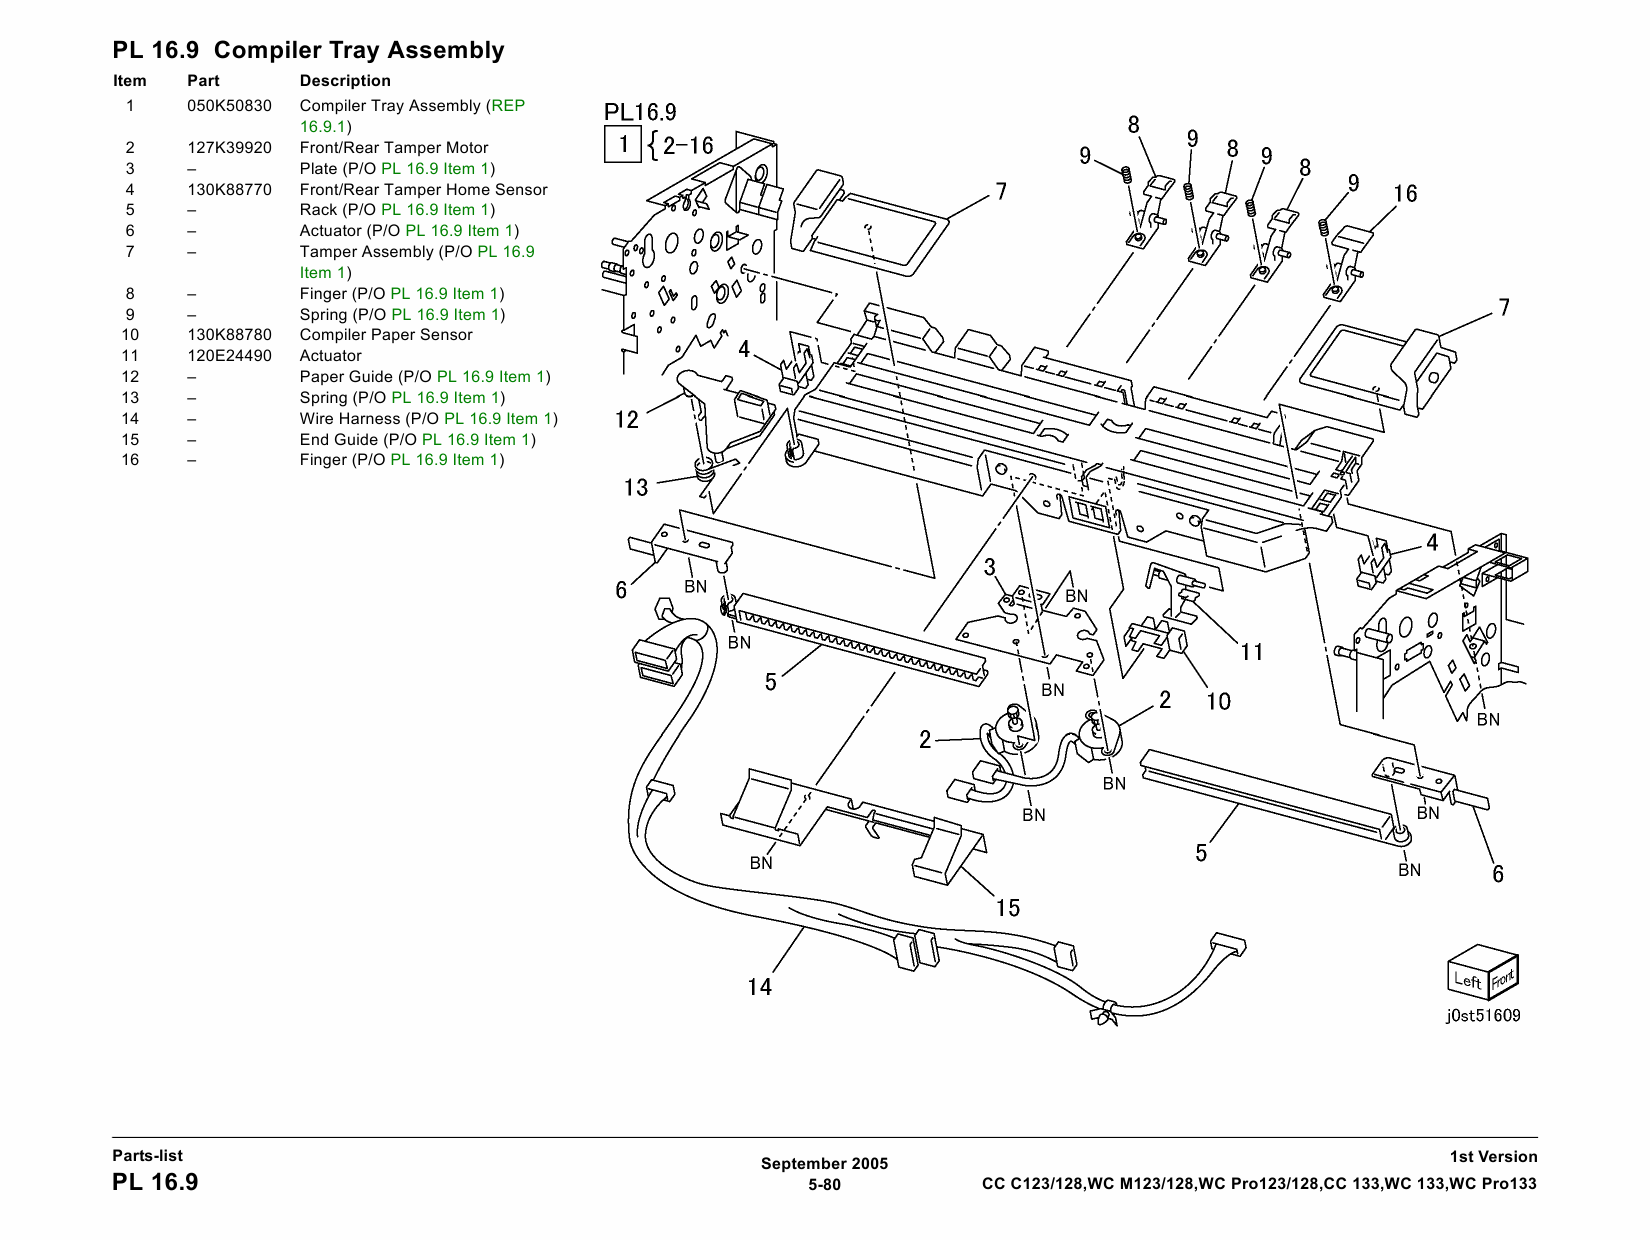 2000 Jaguar Xj8 Wiring Diagram 1986 Jaguar Xj6 Wiring Diagram Meritor